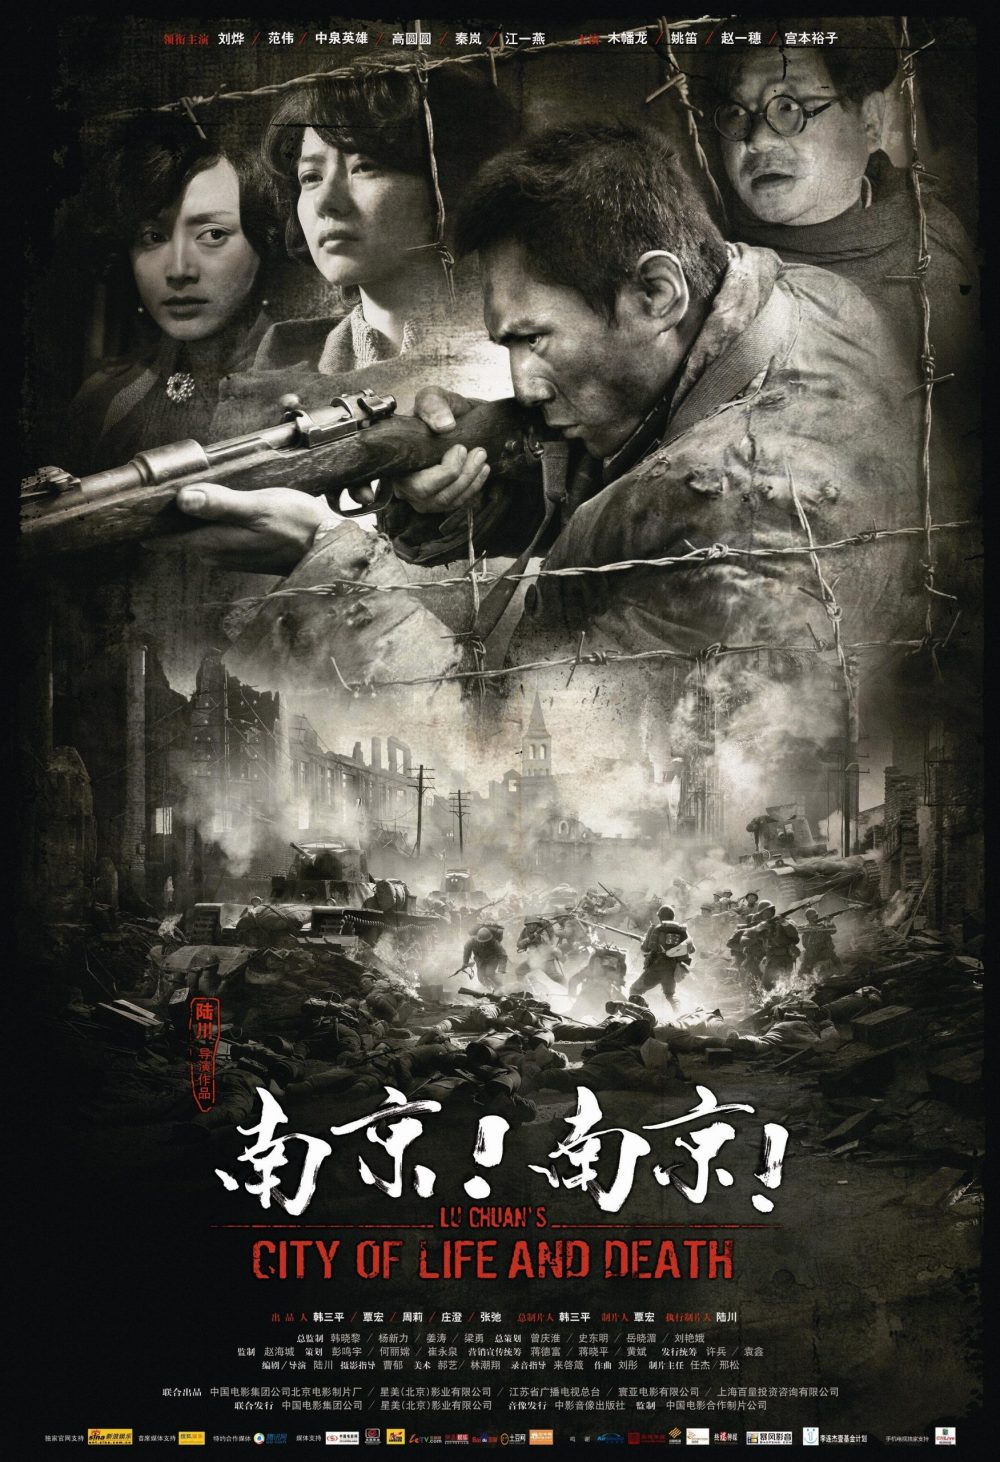 Thảm sát ở Nam Kinh - City of Life and Death (2009)